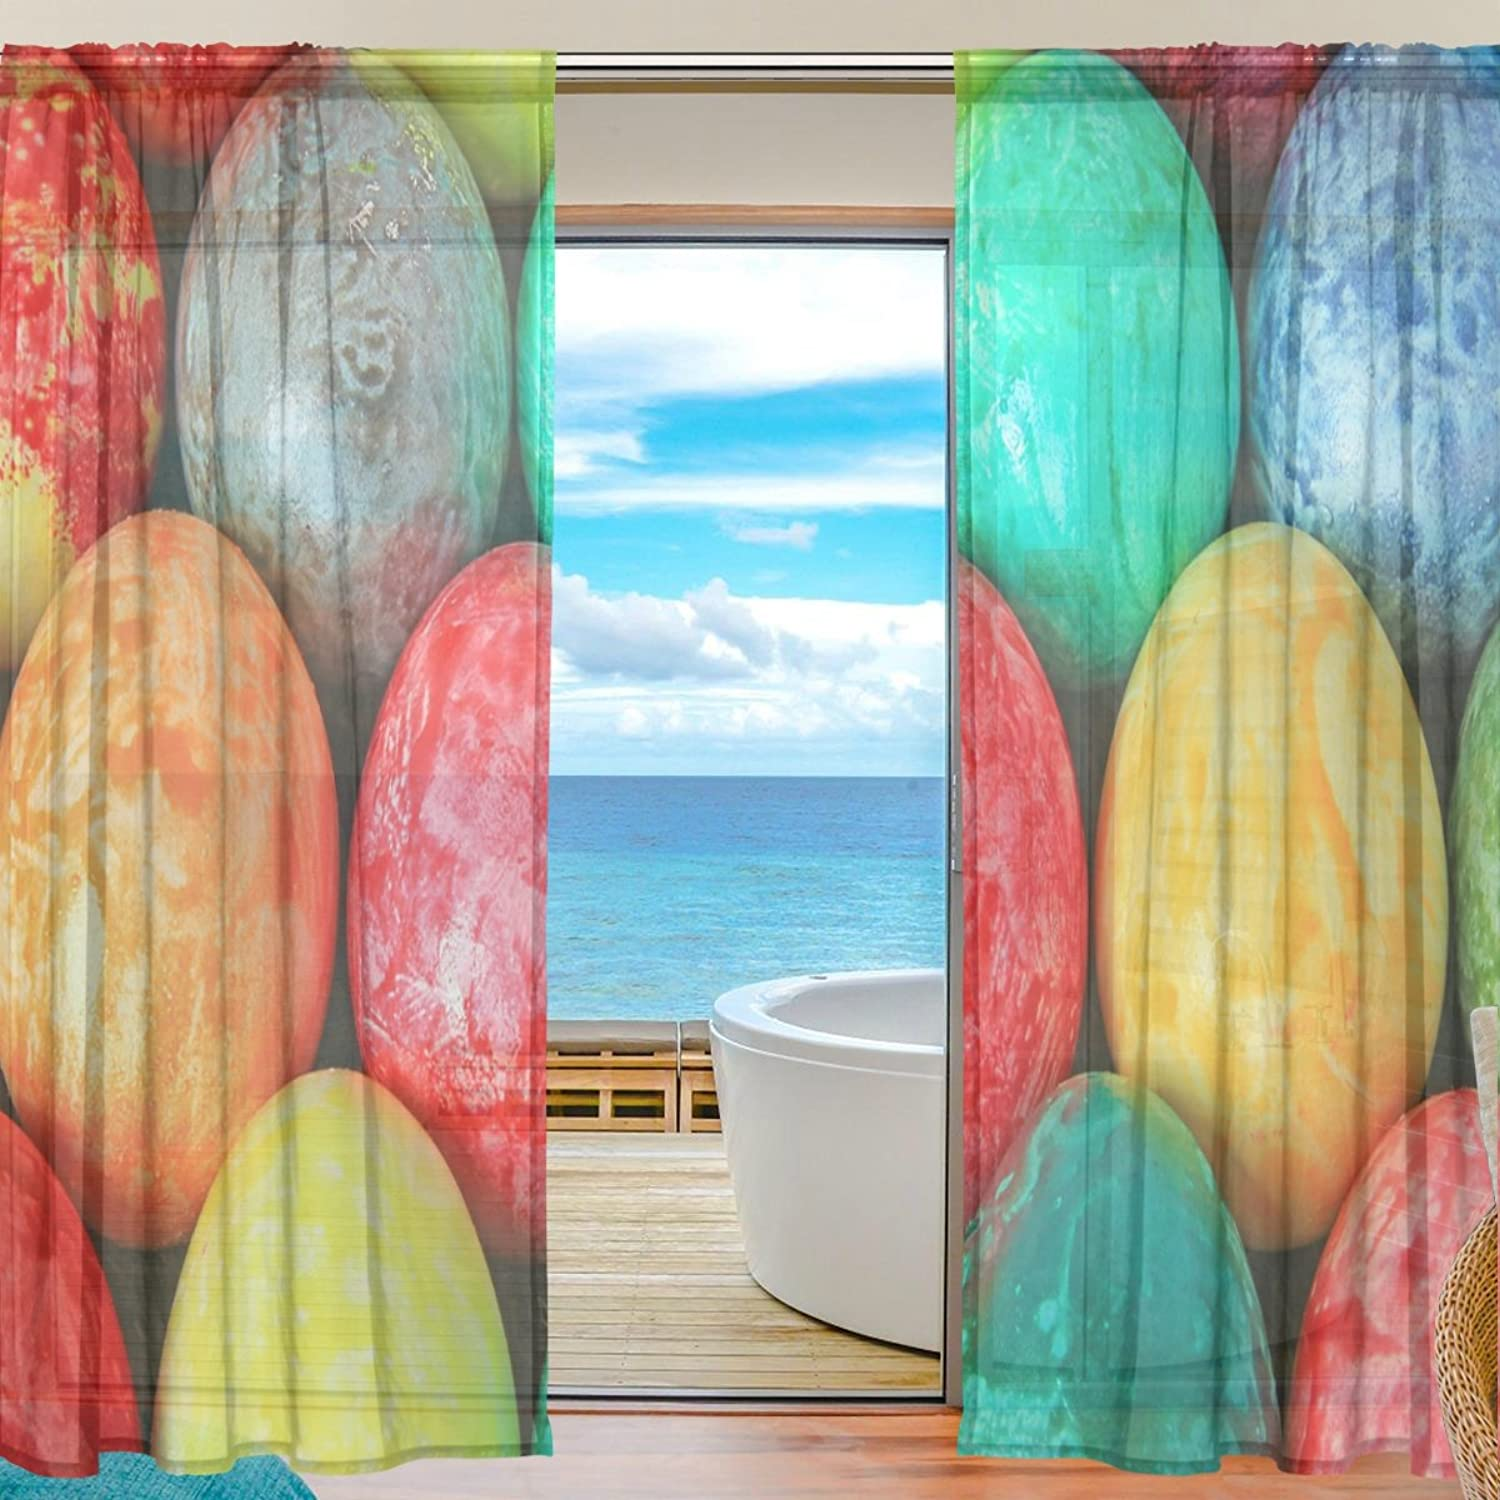 Vantaso Sheer Curtains 78 inch Easter Egg coloring with Oil Istock for Kids Girls Bedroom Living Room Window Decorative 2 Panels